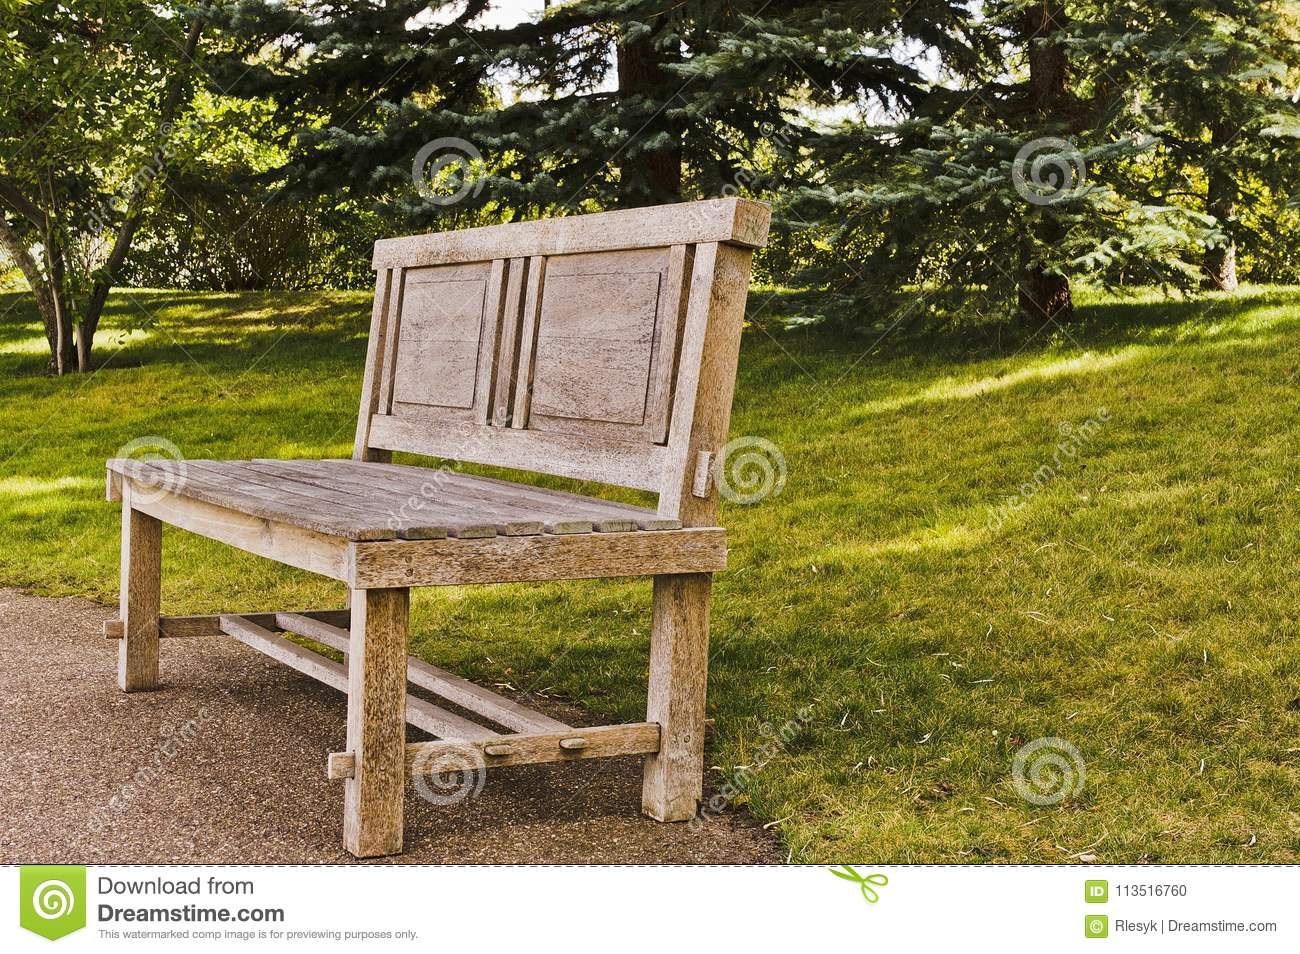 Incredible Wooden Handcrafted Bench In Japanese Garden Stock Photo Machost Co Dining Chair Design Ideas Machostcouk